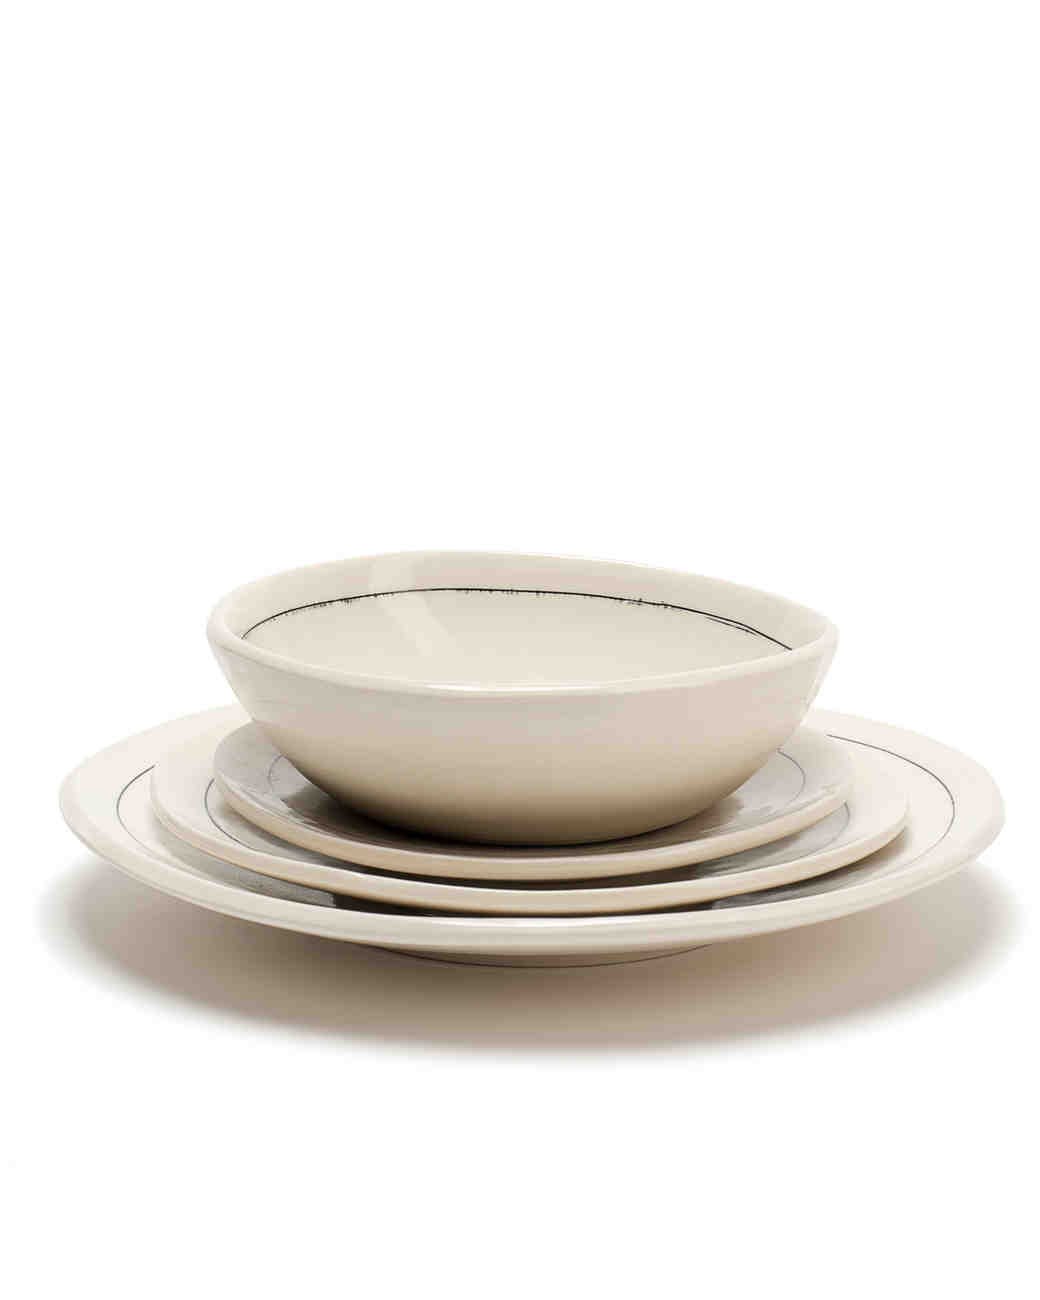 china-registry-global-keith-kreeger-hudson-dinnerware-1014.jpg